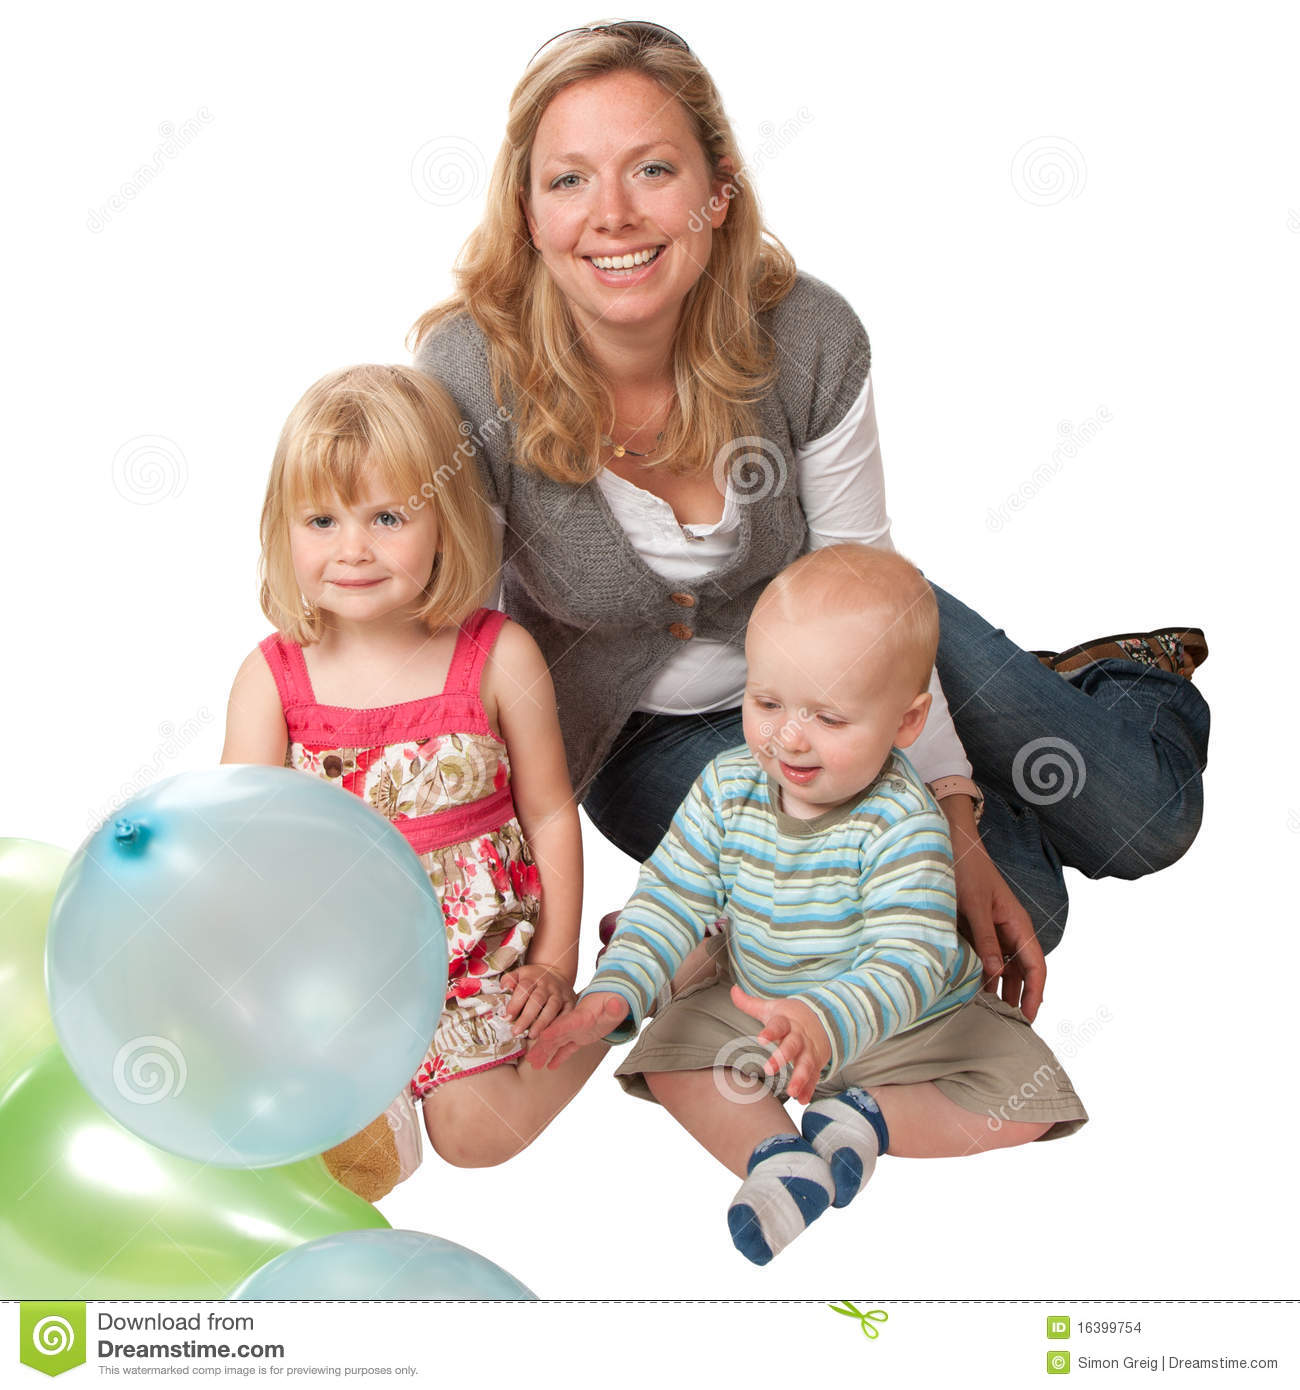 Blonde Woman with Two Children